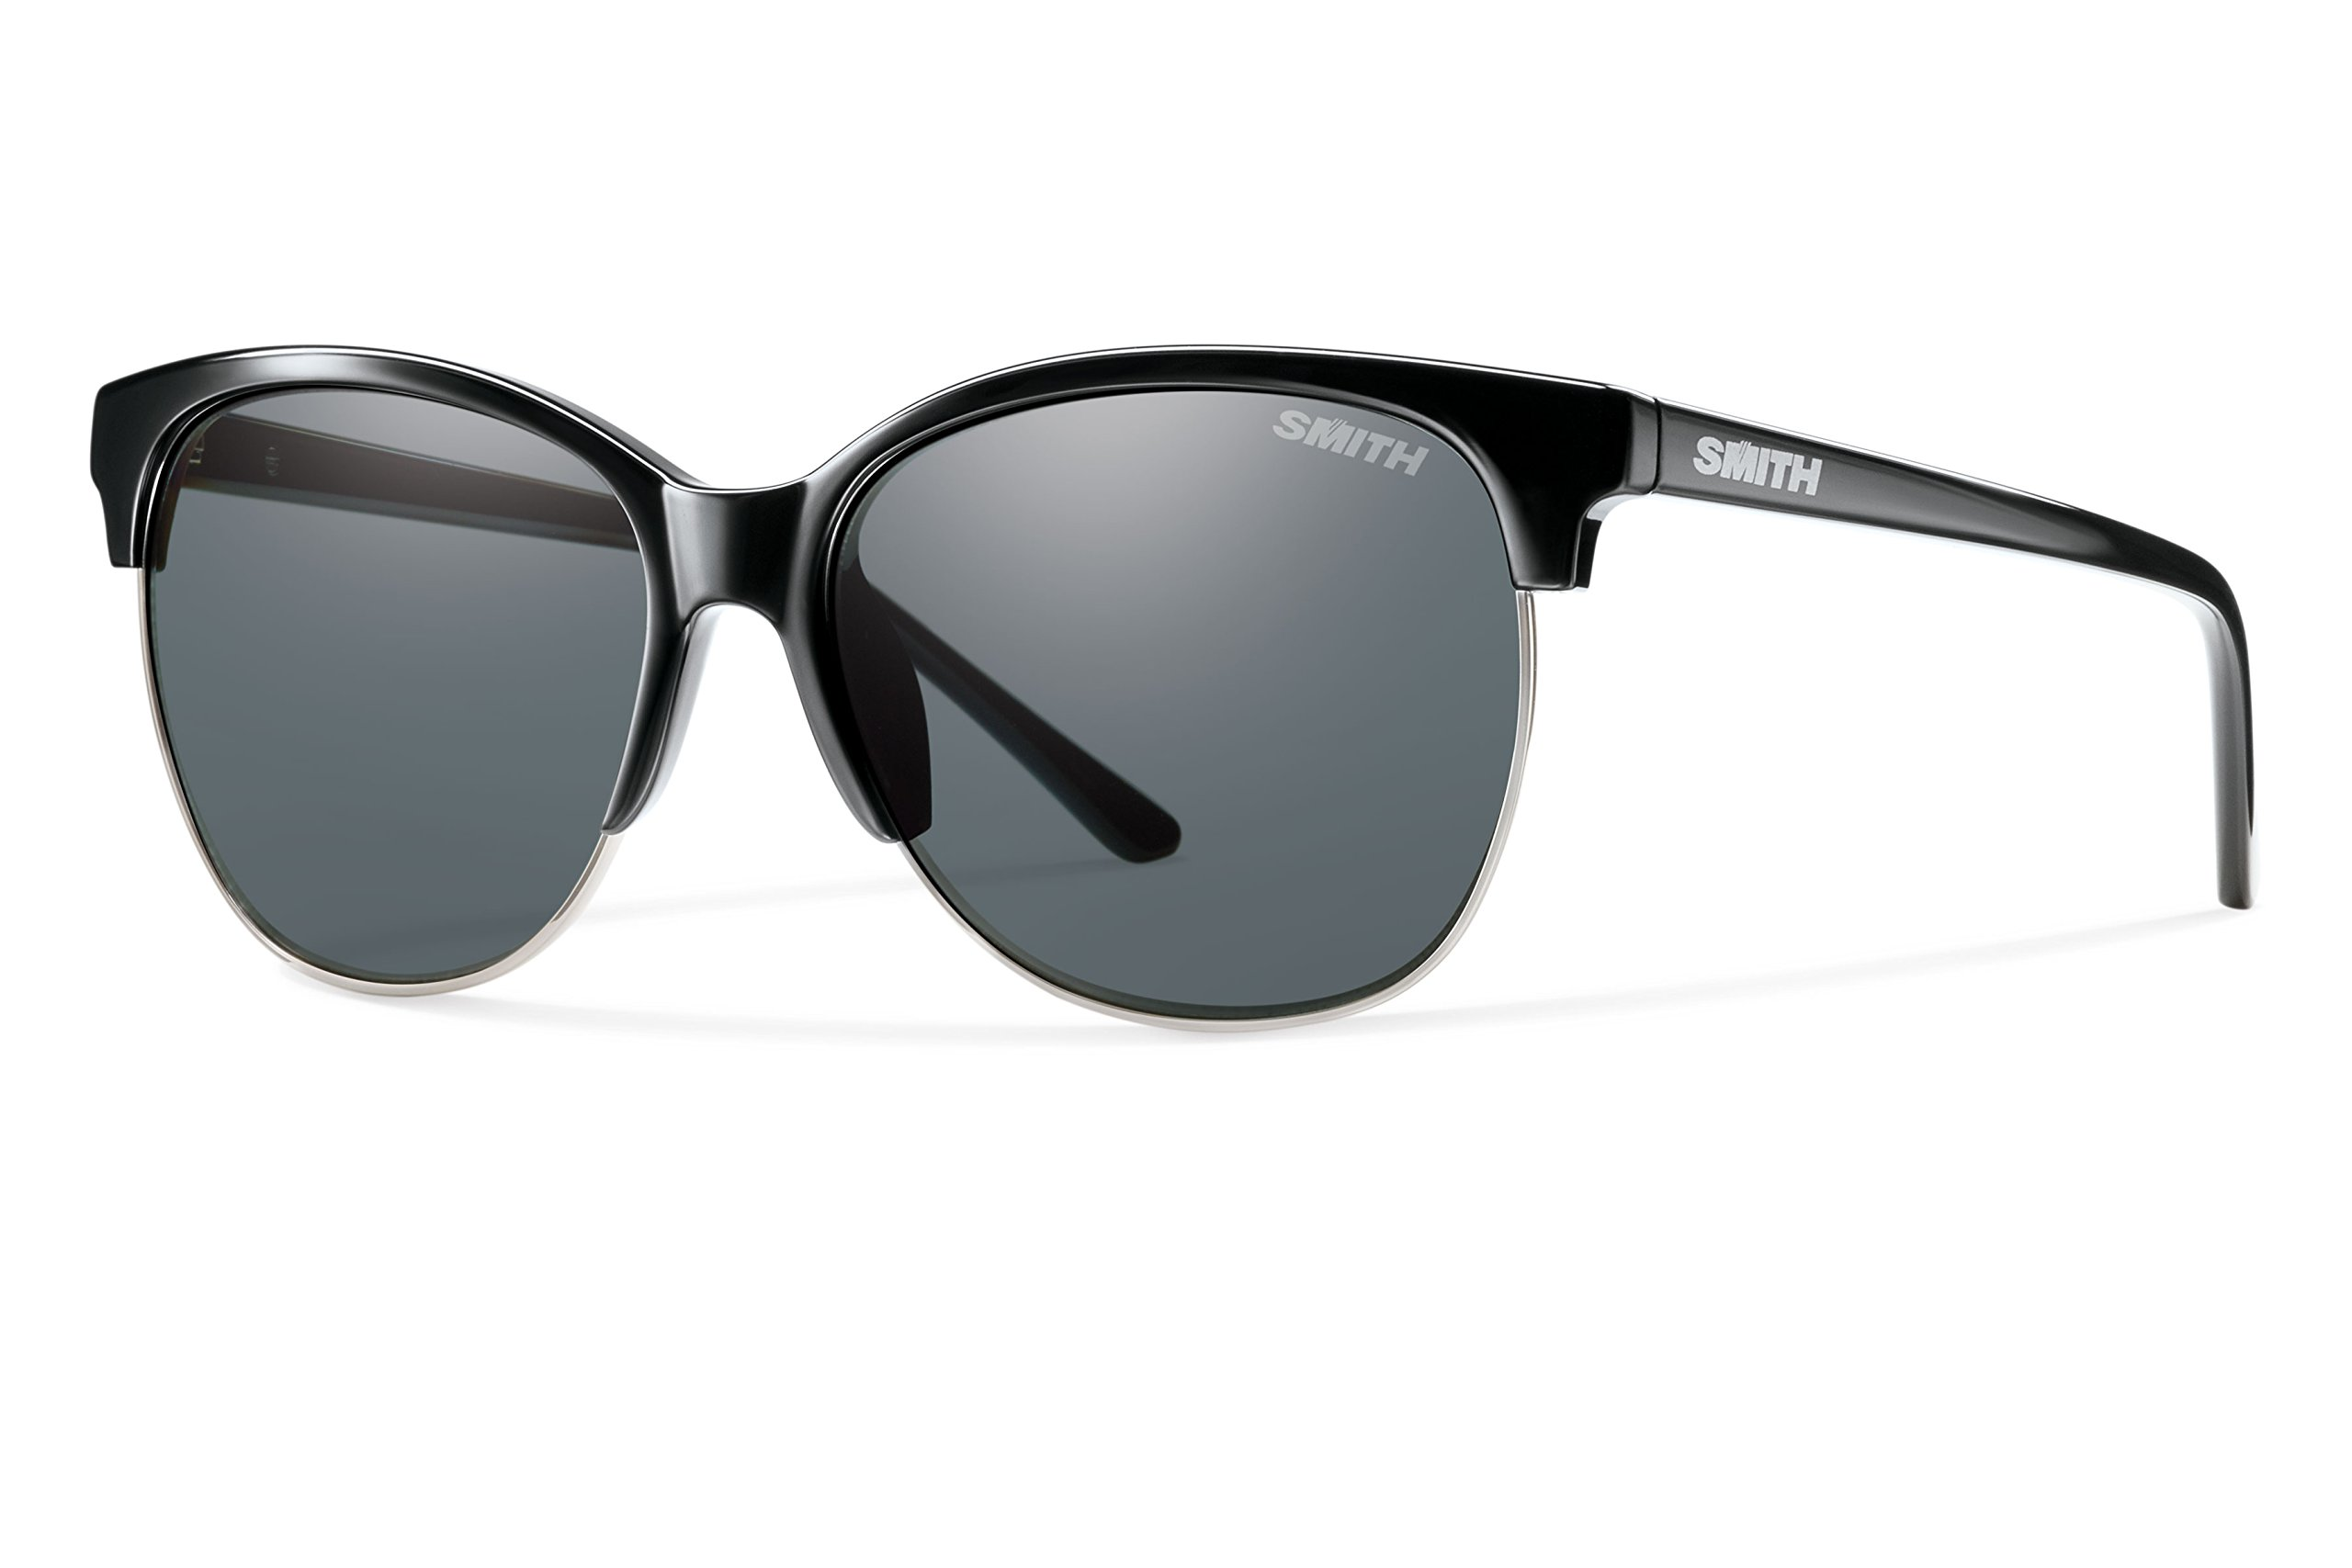 Smith Optics Rebel Carbonic Polarized Sunglasses, Black, Gray by Smith Optics